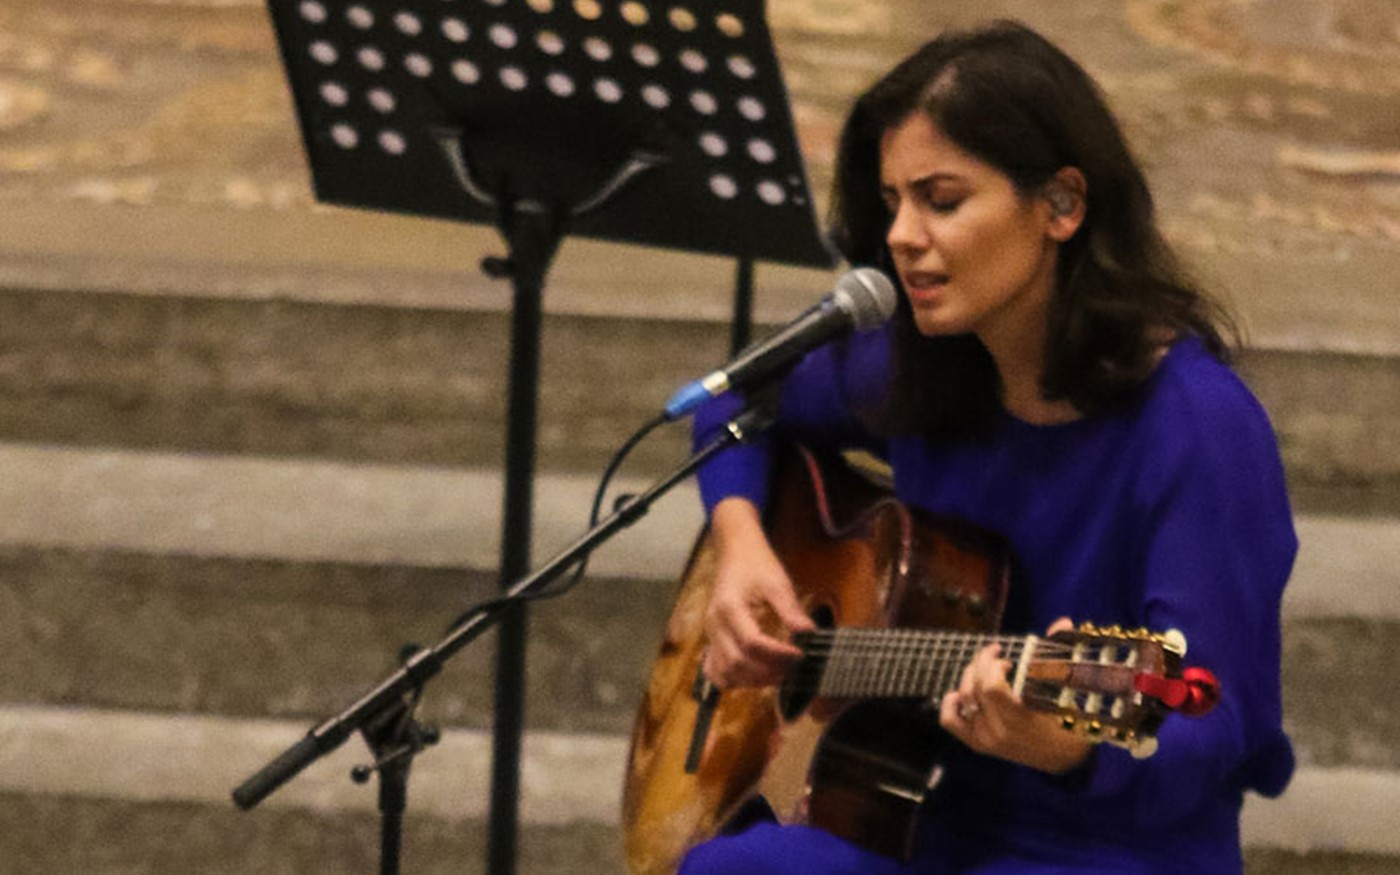 Katie Melua sings The Closest Thing to Crazy by Mike Batt